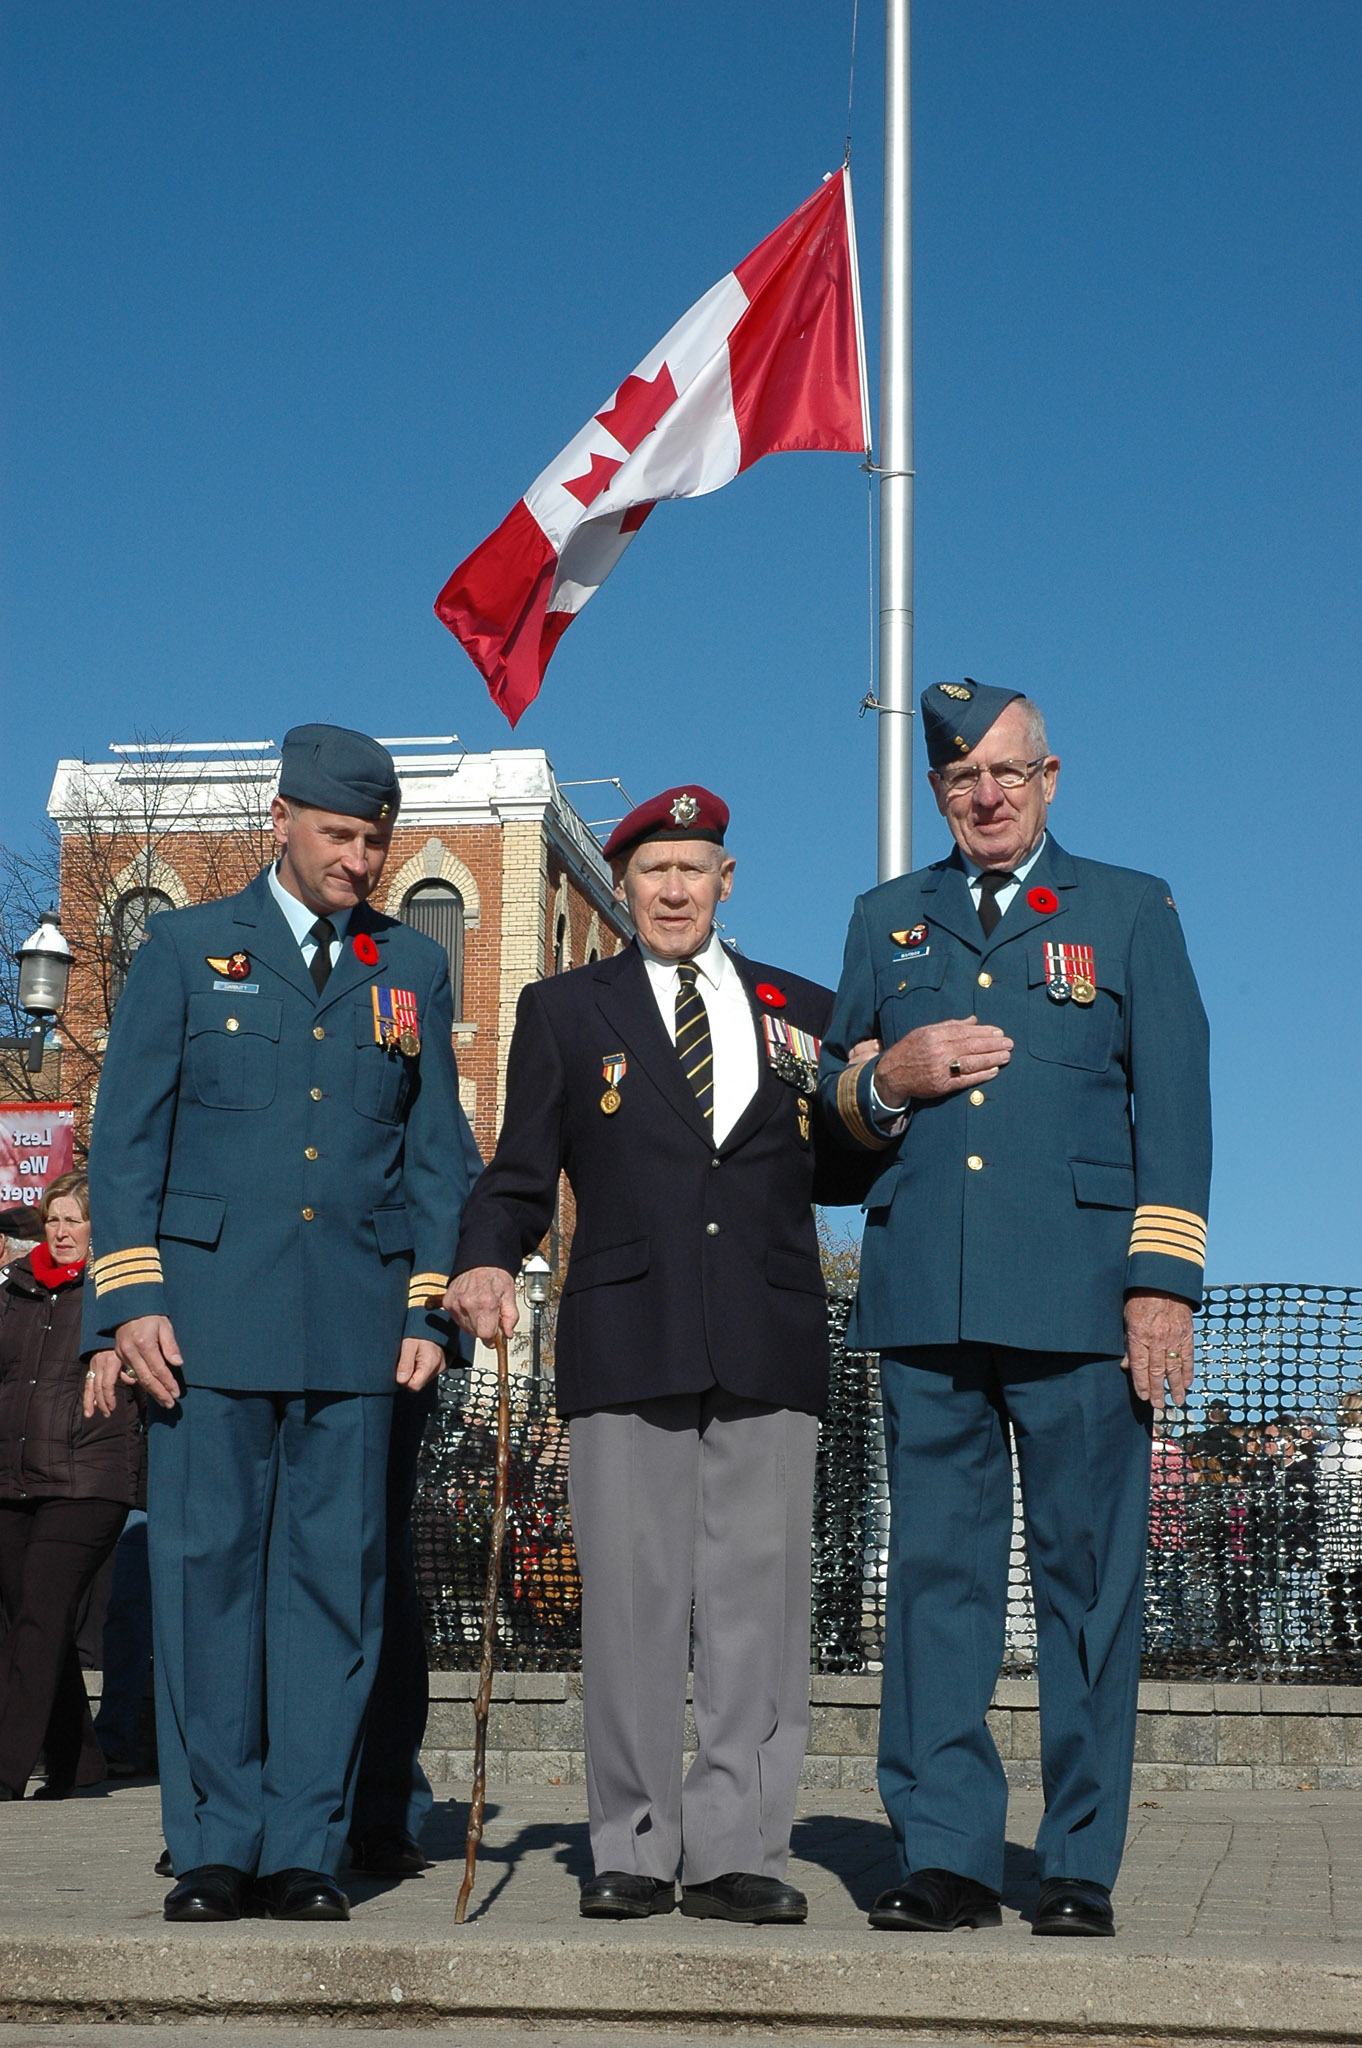 "Lieutenant-Colonel Phil Garbutt (left), commander of 16 Wing Borden, Ontario, Mr. Herb Cloutier (centre), a Second World War veteran, and Honorary Colonel Rob Warman of 16 Wing, prepare to accept the salute from troops ""marching past"" during the 2009 Remembrance Day Ceremony in Barrie, Ontario. PHOTO: Sergeant Kev Parle"